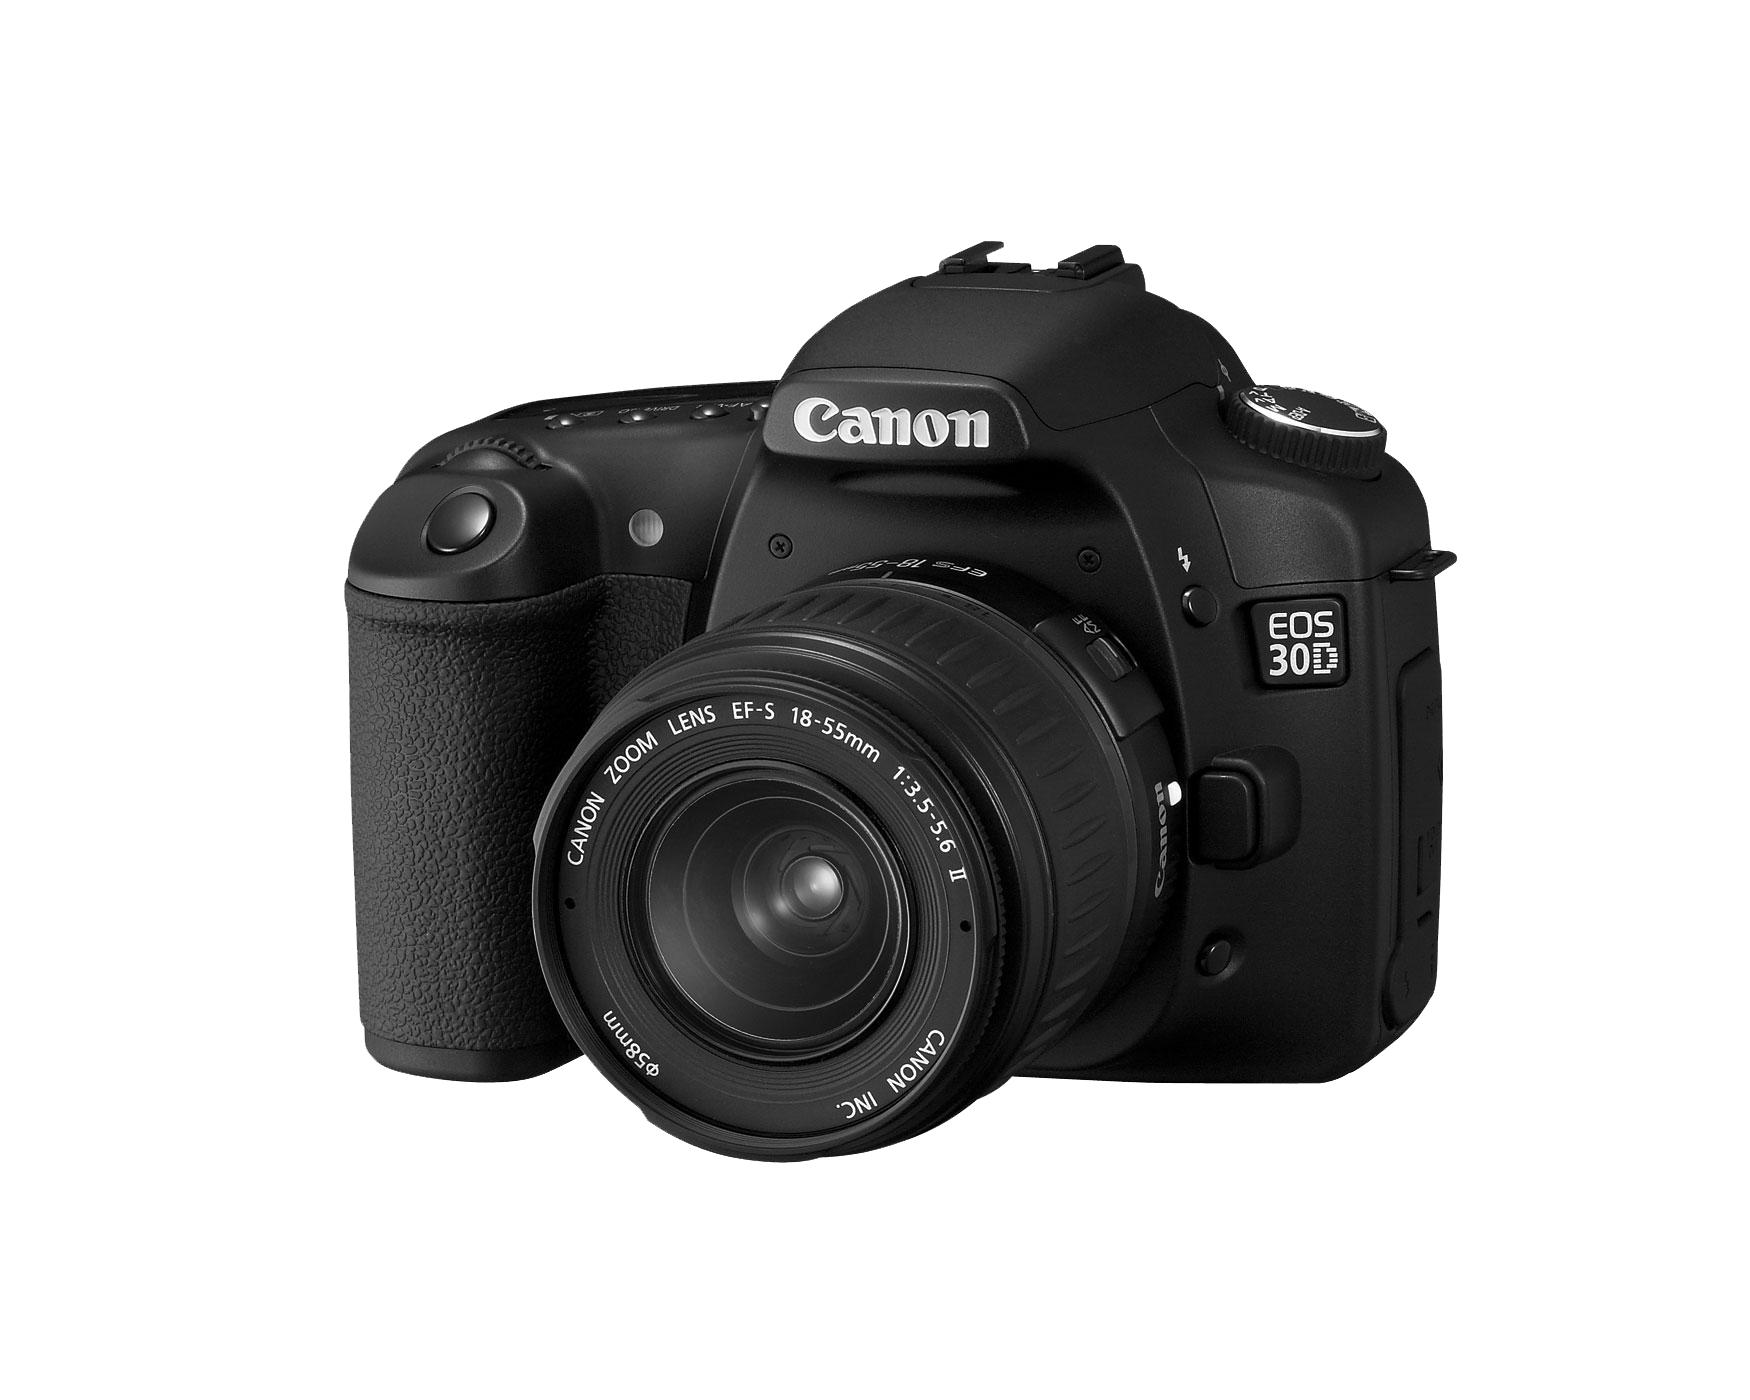 Canon Camera Png - Canon Eos 30 Photo Camera transparent PNG - StickPNG